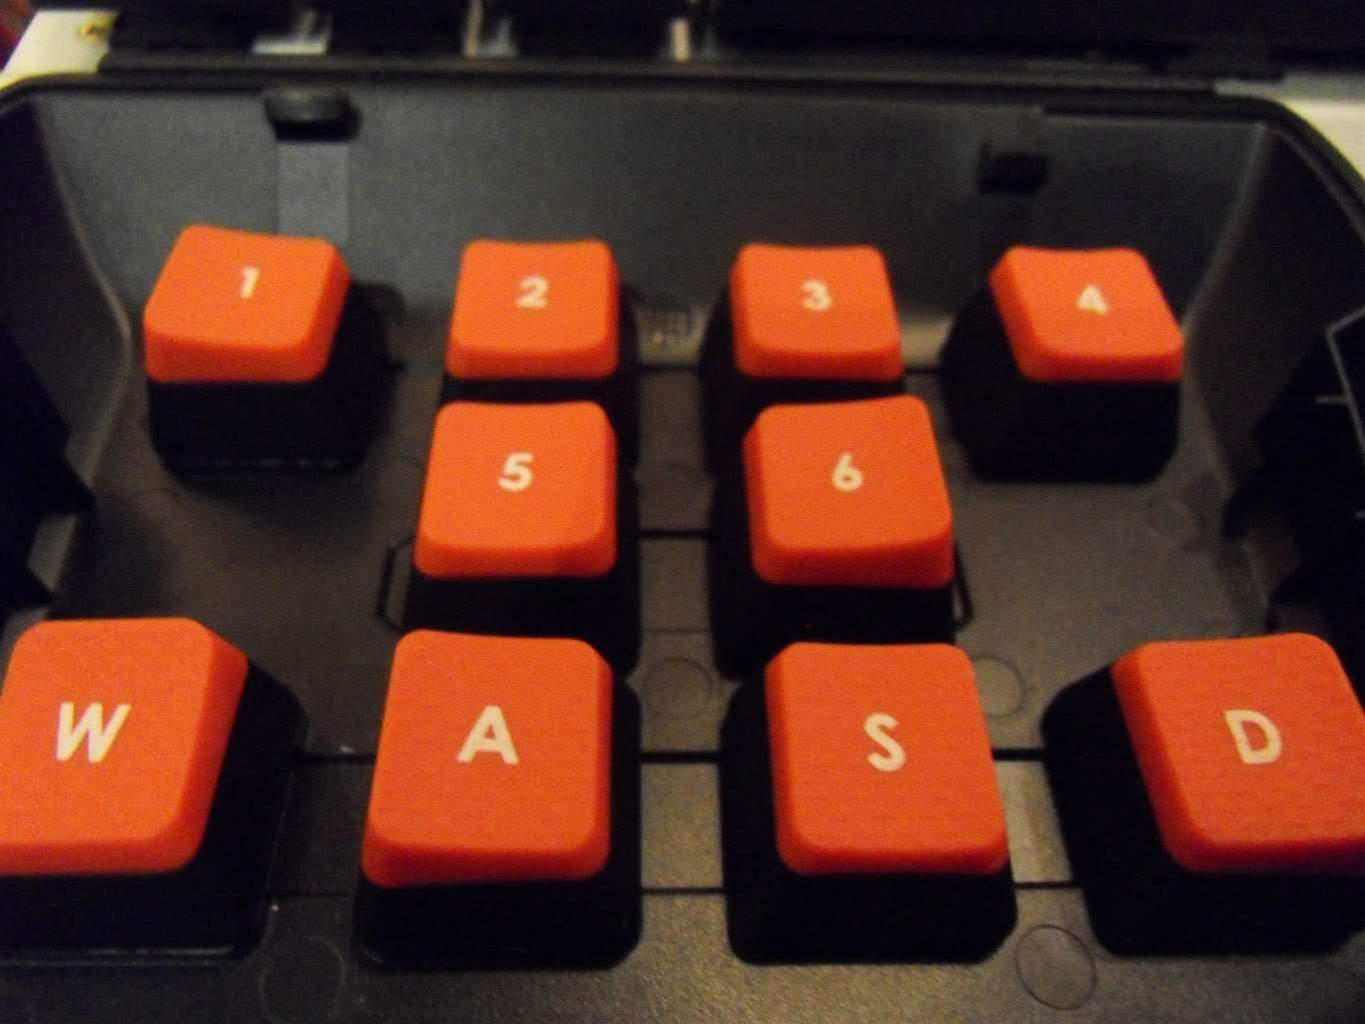 Corsair's new Vengeance keyboards: best things ever